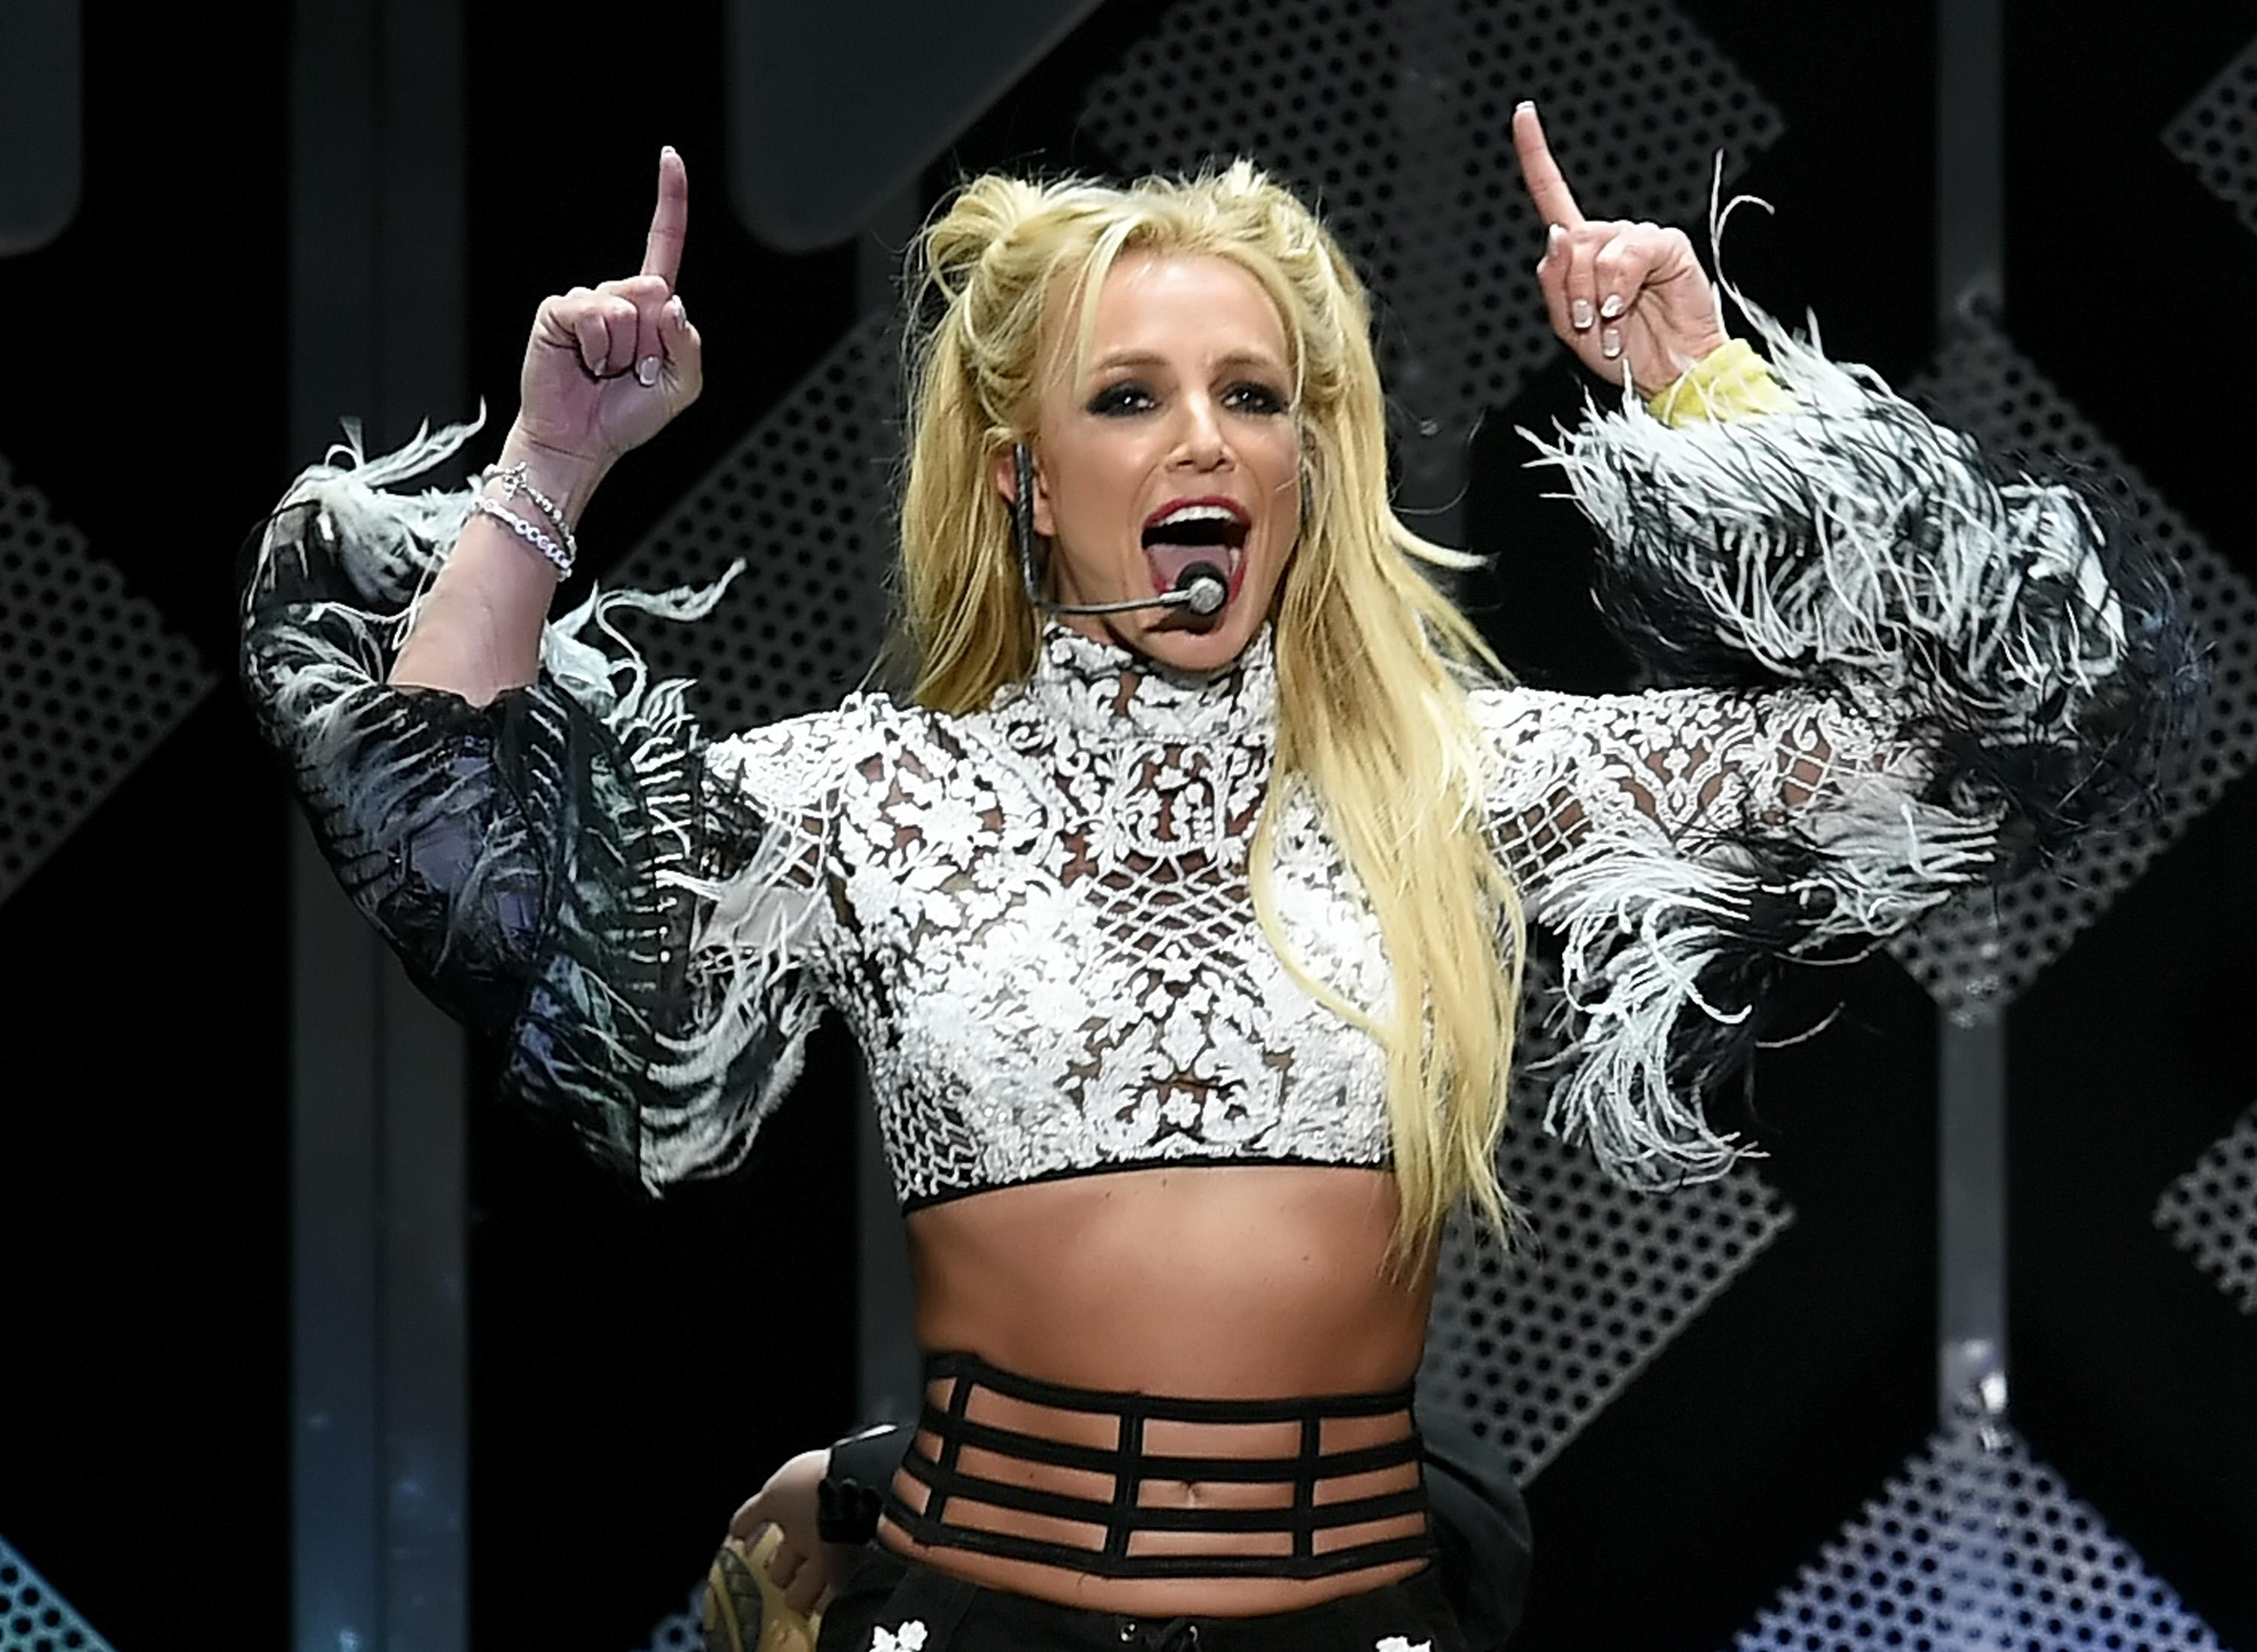 Britney Spears makes a celebratory gesture on stage.